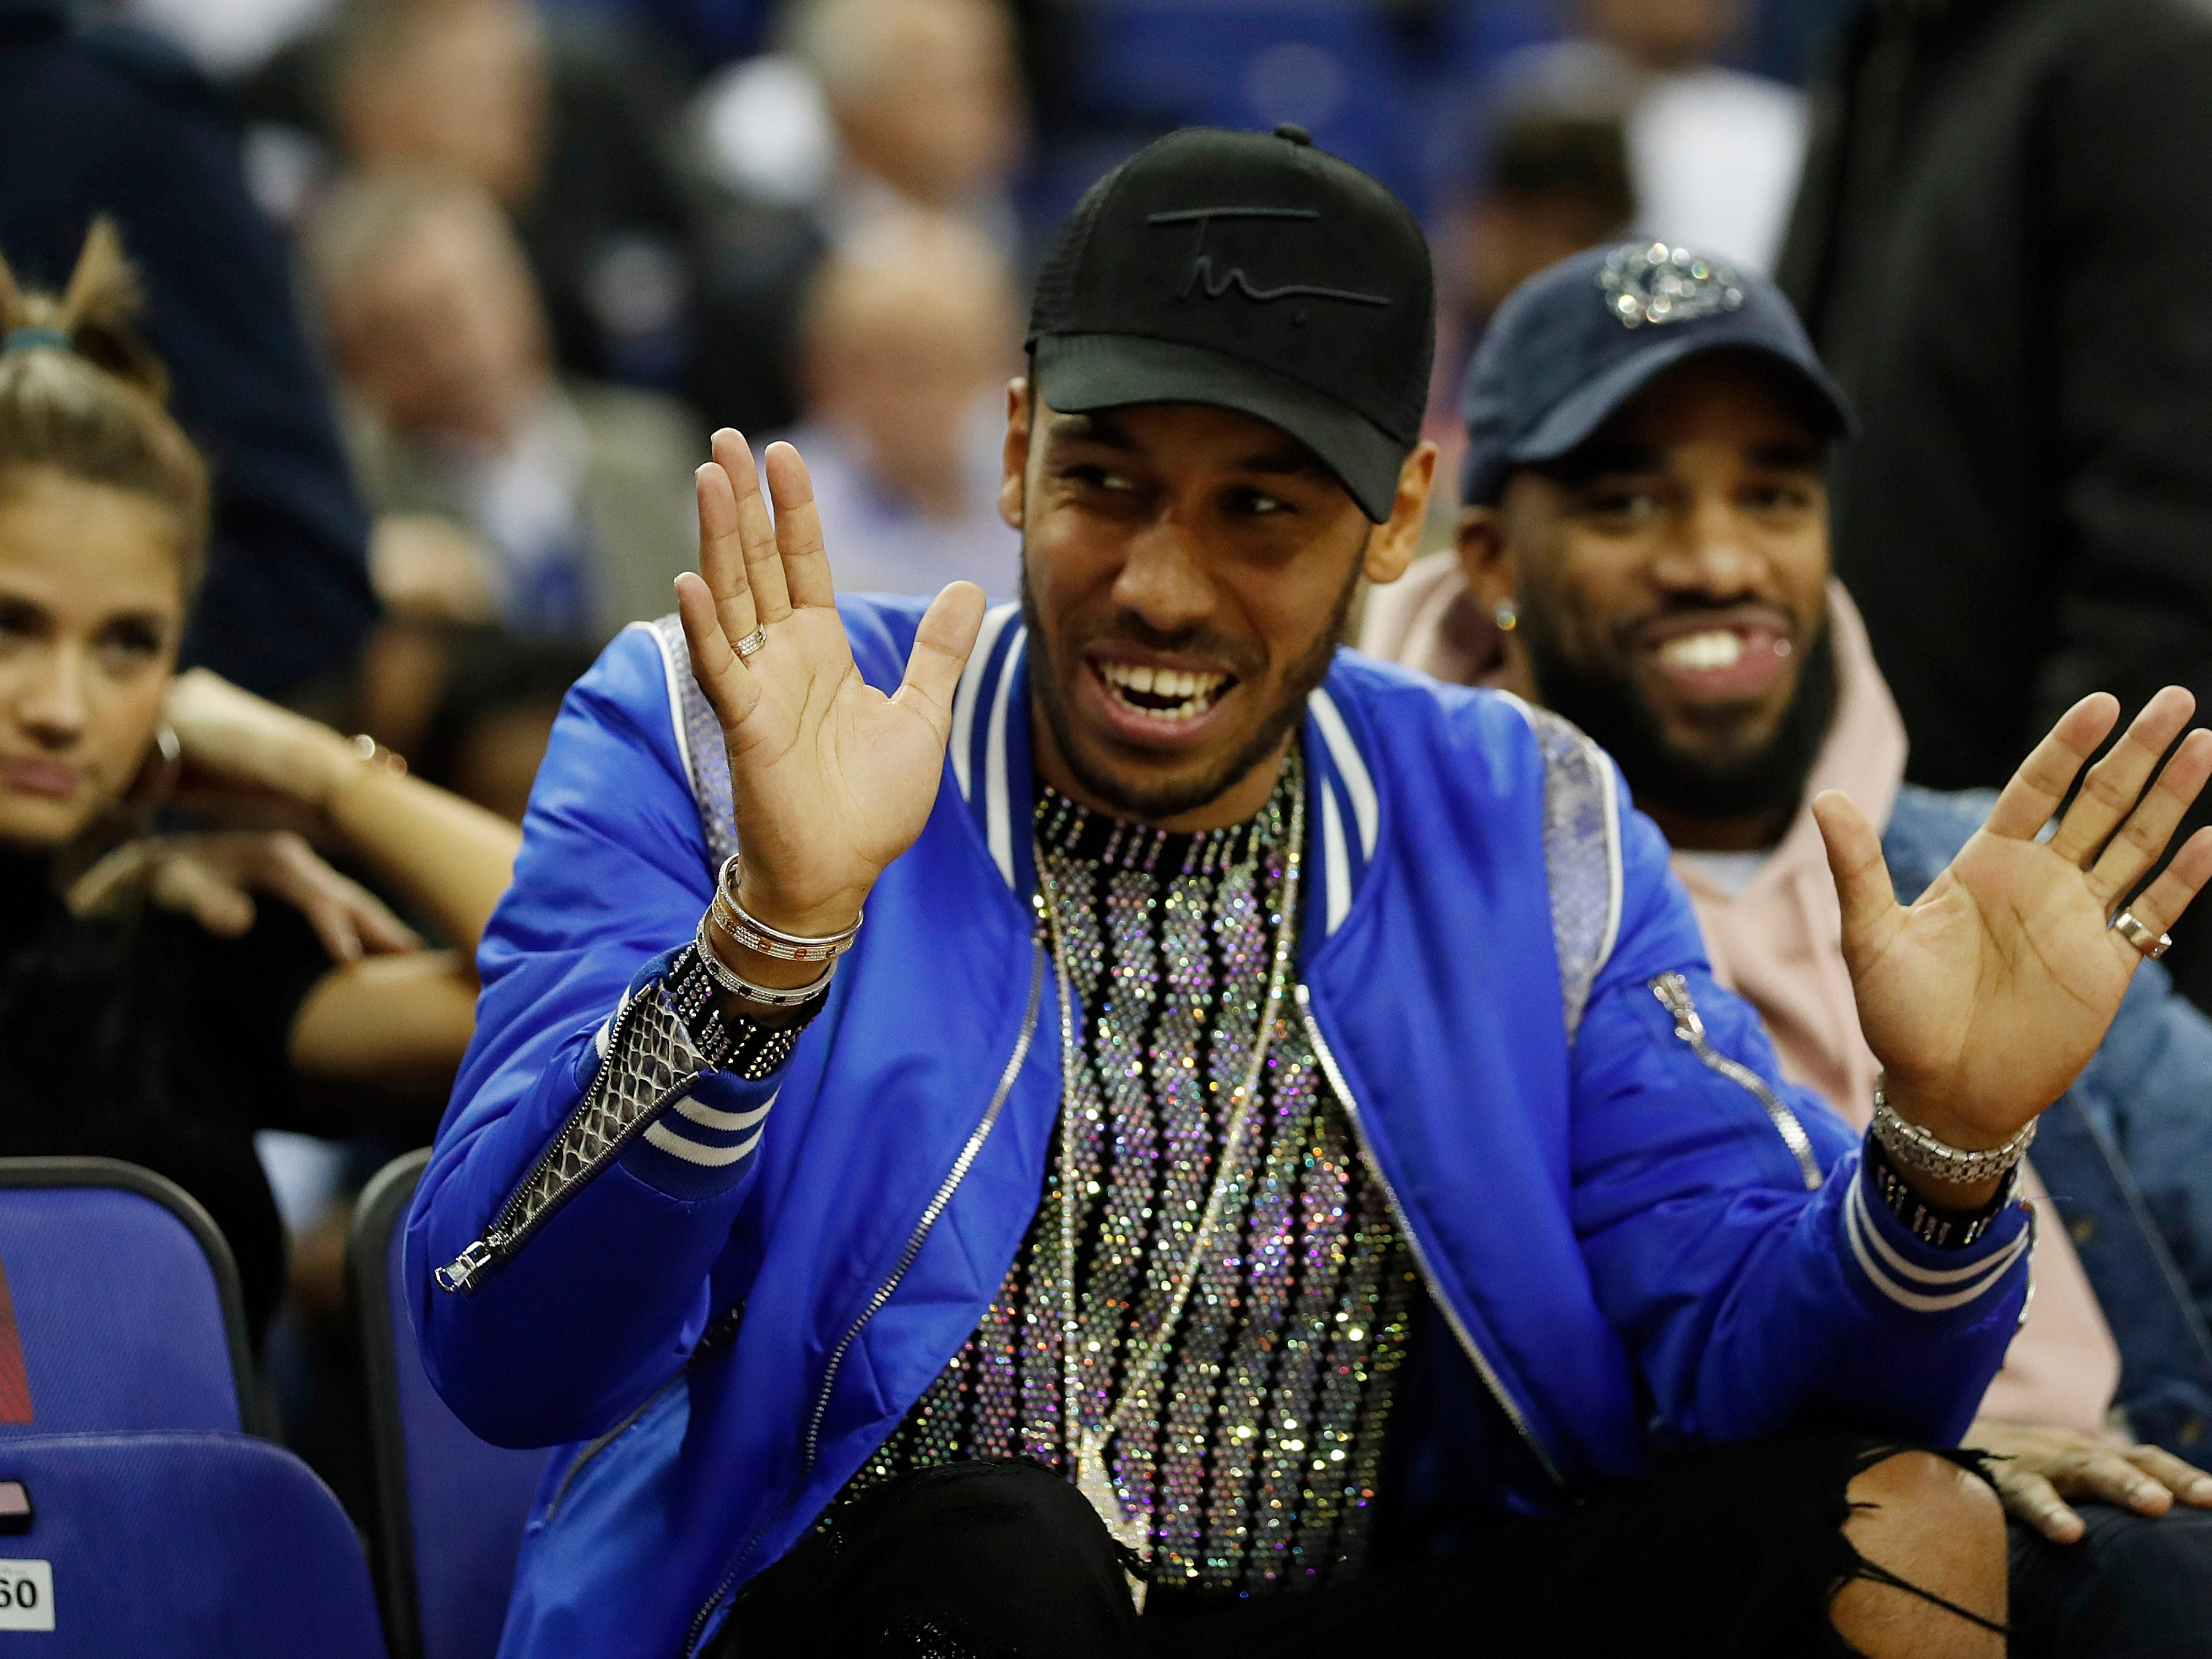 Arsenal player Pierre-Emerick Aubameyang gestures as he attends a NBA basketball game between New York Knicks and Washington Wizards at the O2 Arena, in London, Thursday, Jan.17, 2019.